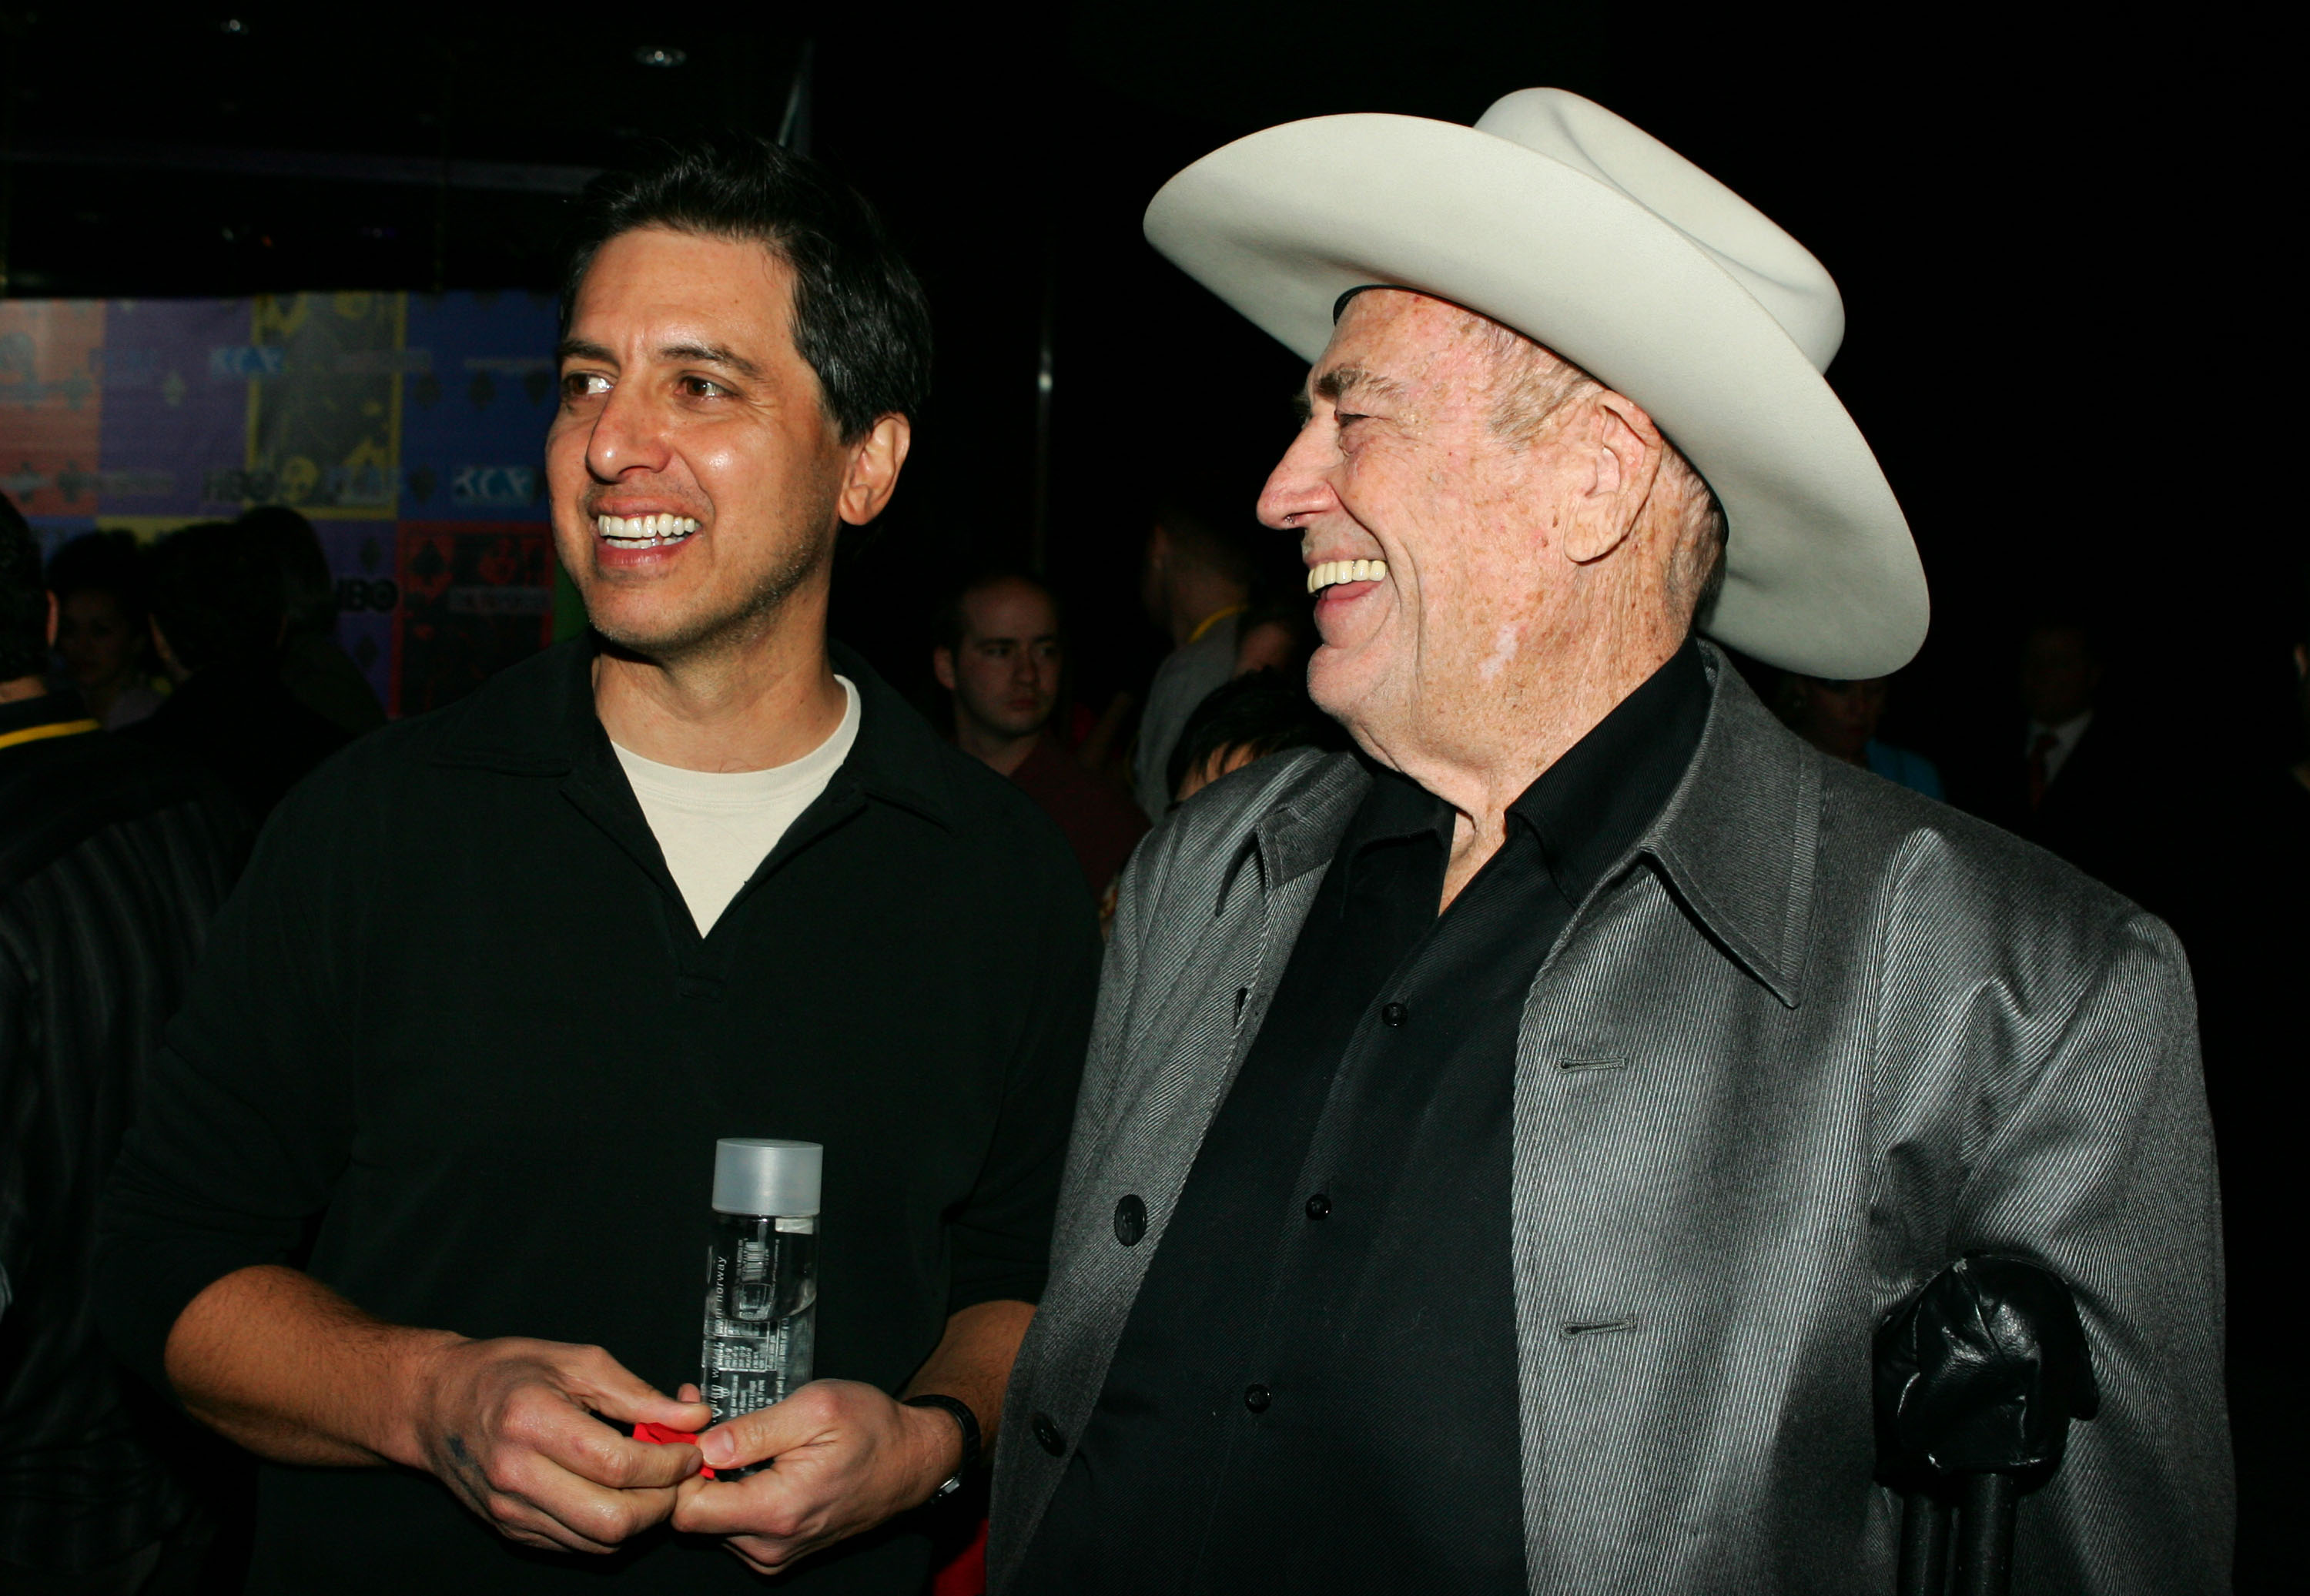 Ray Romano and Doyle Brunson during the 2005 Comedy Festival - Celebrity Poker Tournament at PURE Nightclub at Caesars Palace in Las Vegas. (Photo by Mathew Imaging/FilmMagic)